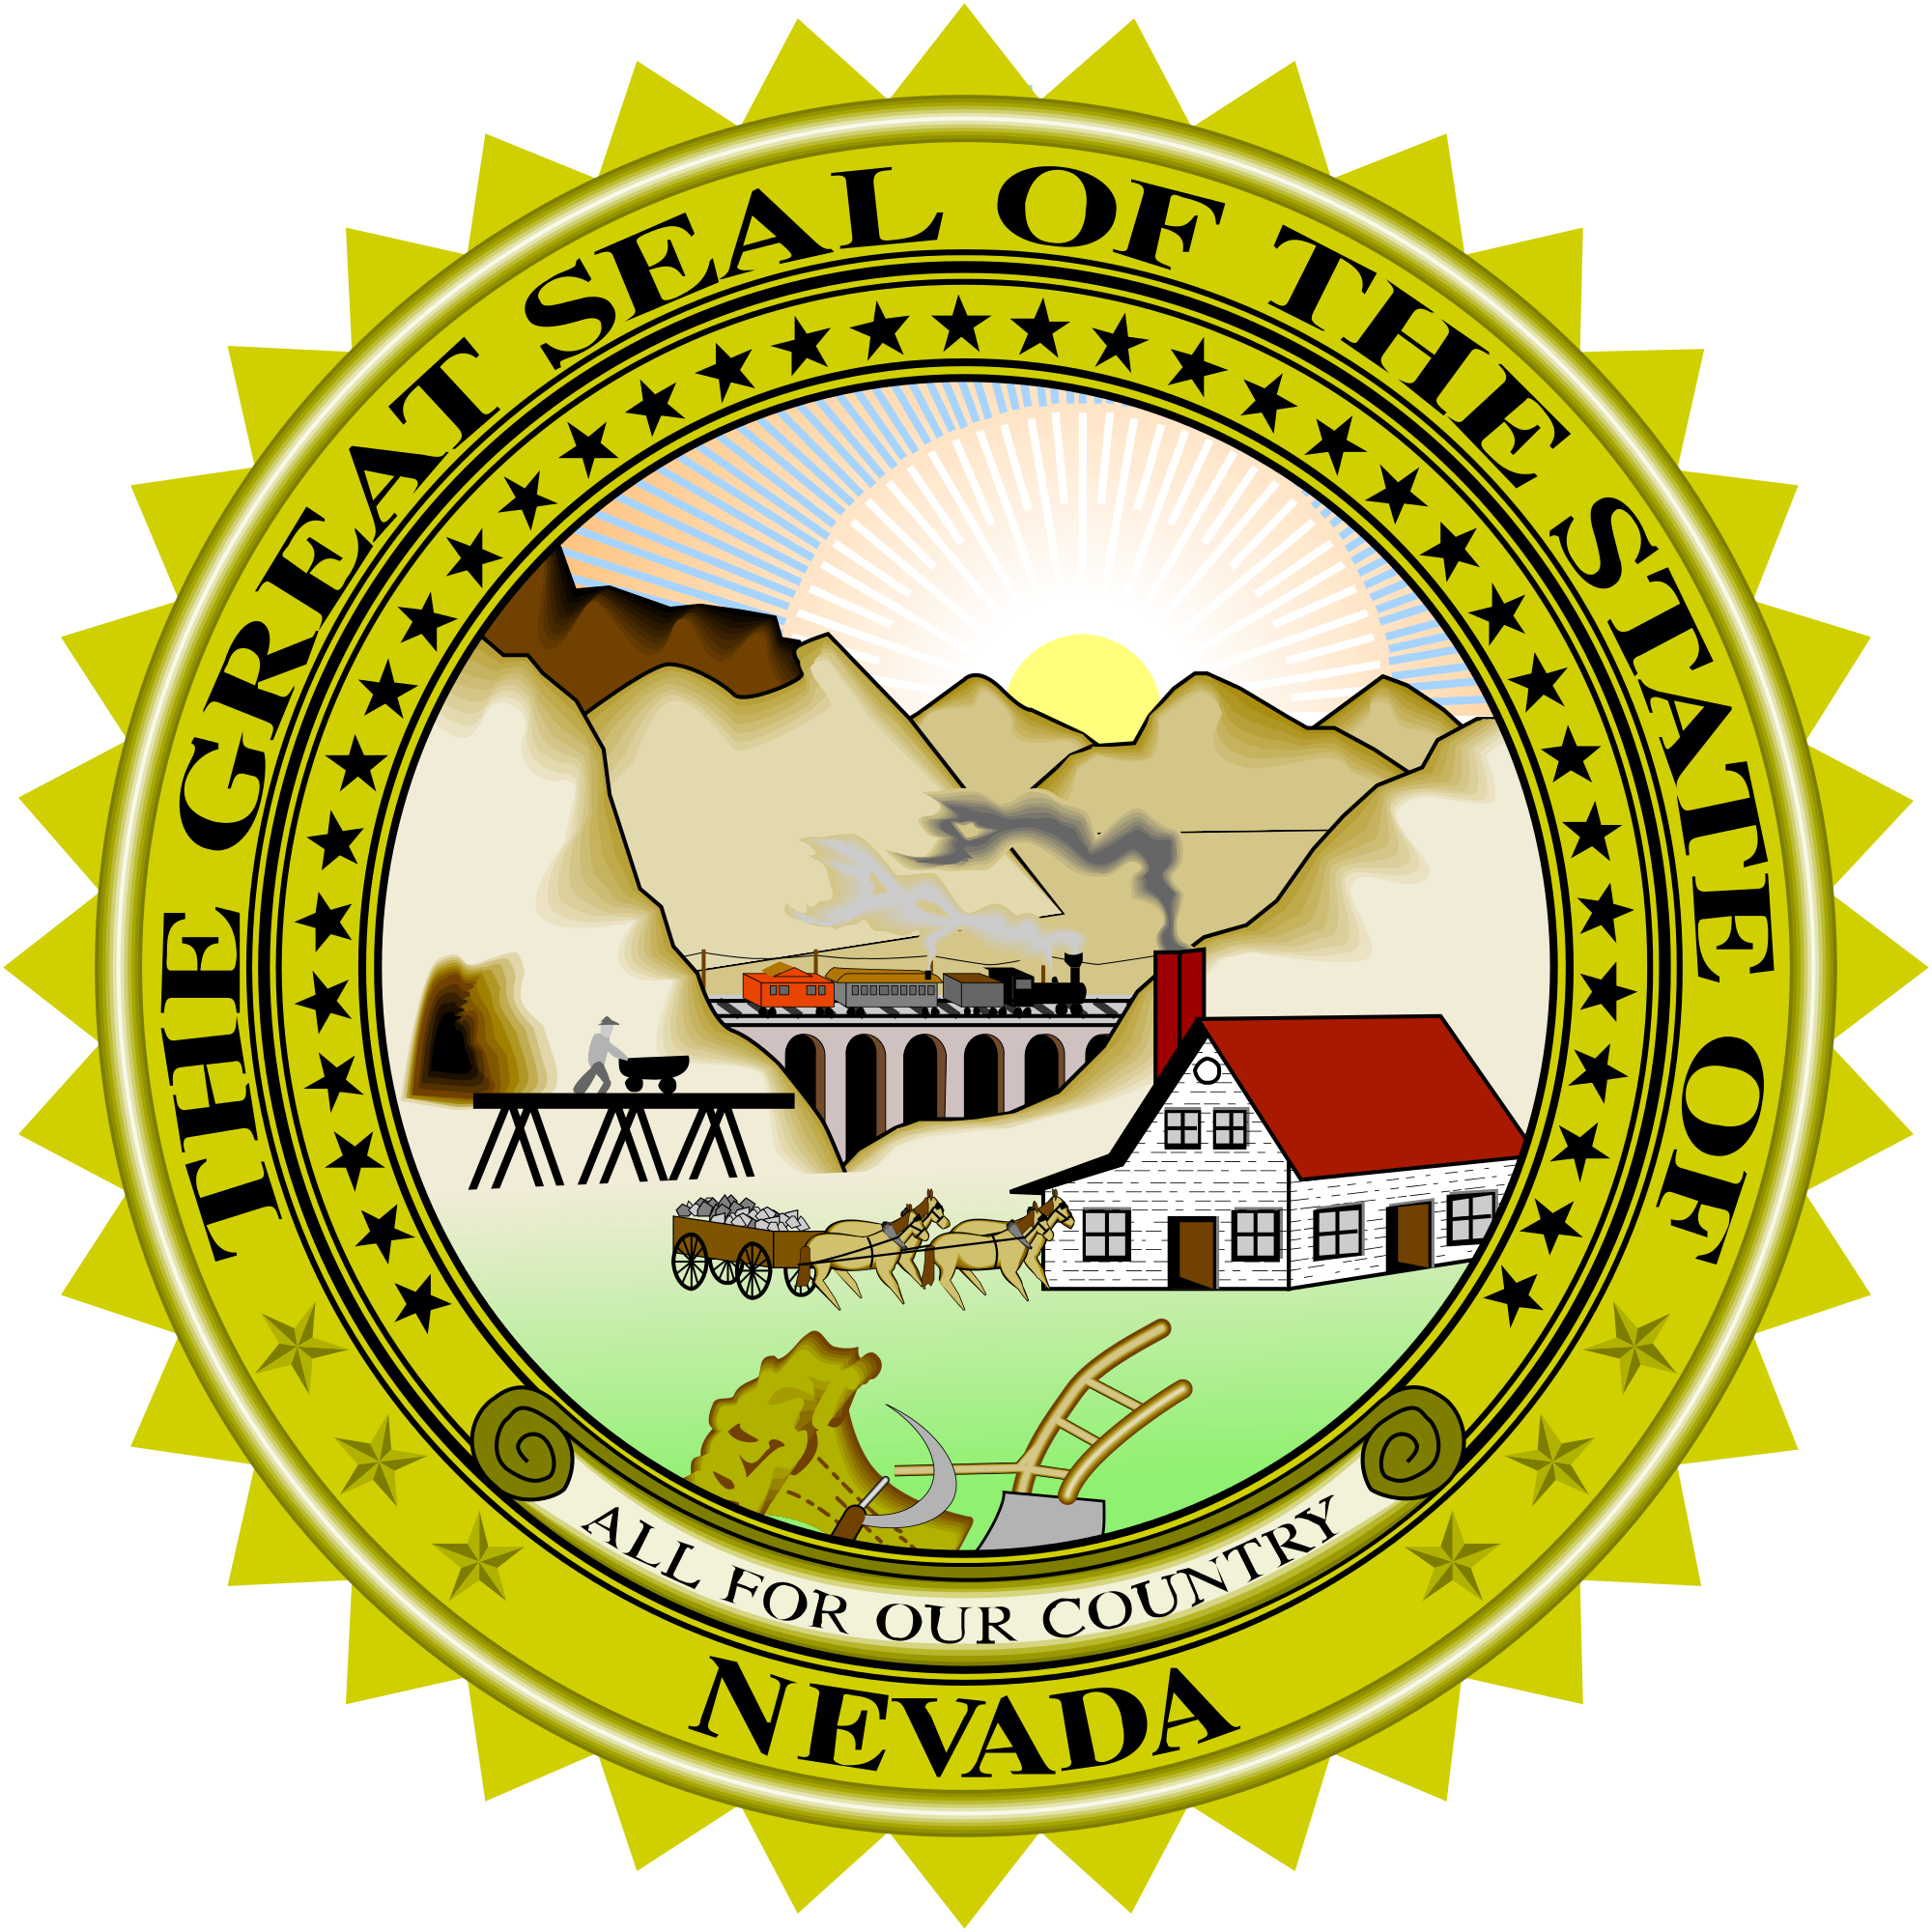 Nevada Wedding Laws Universal Life Church